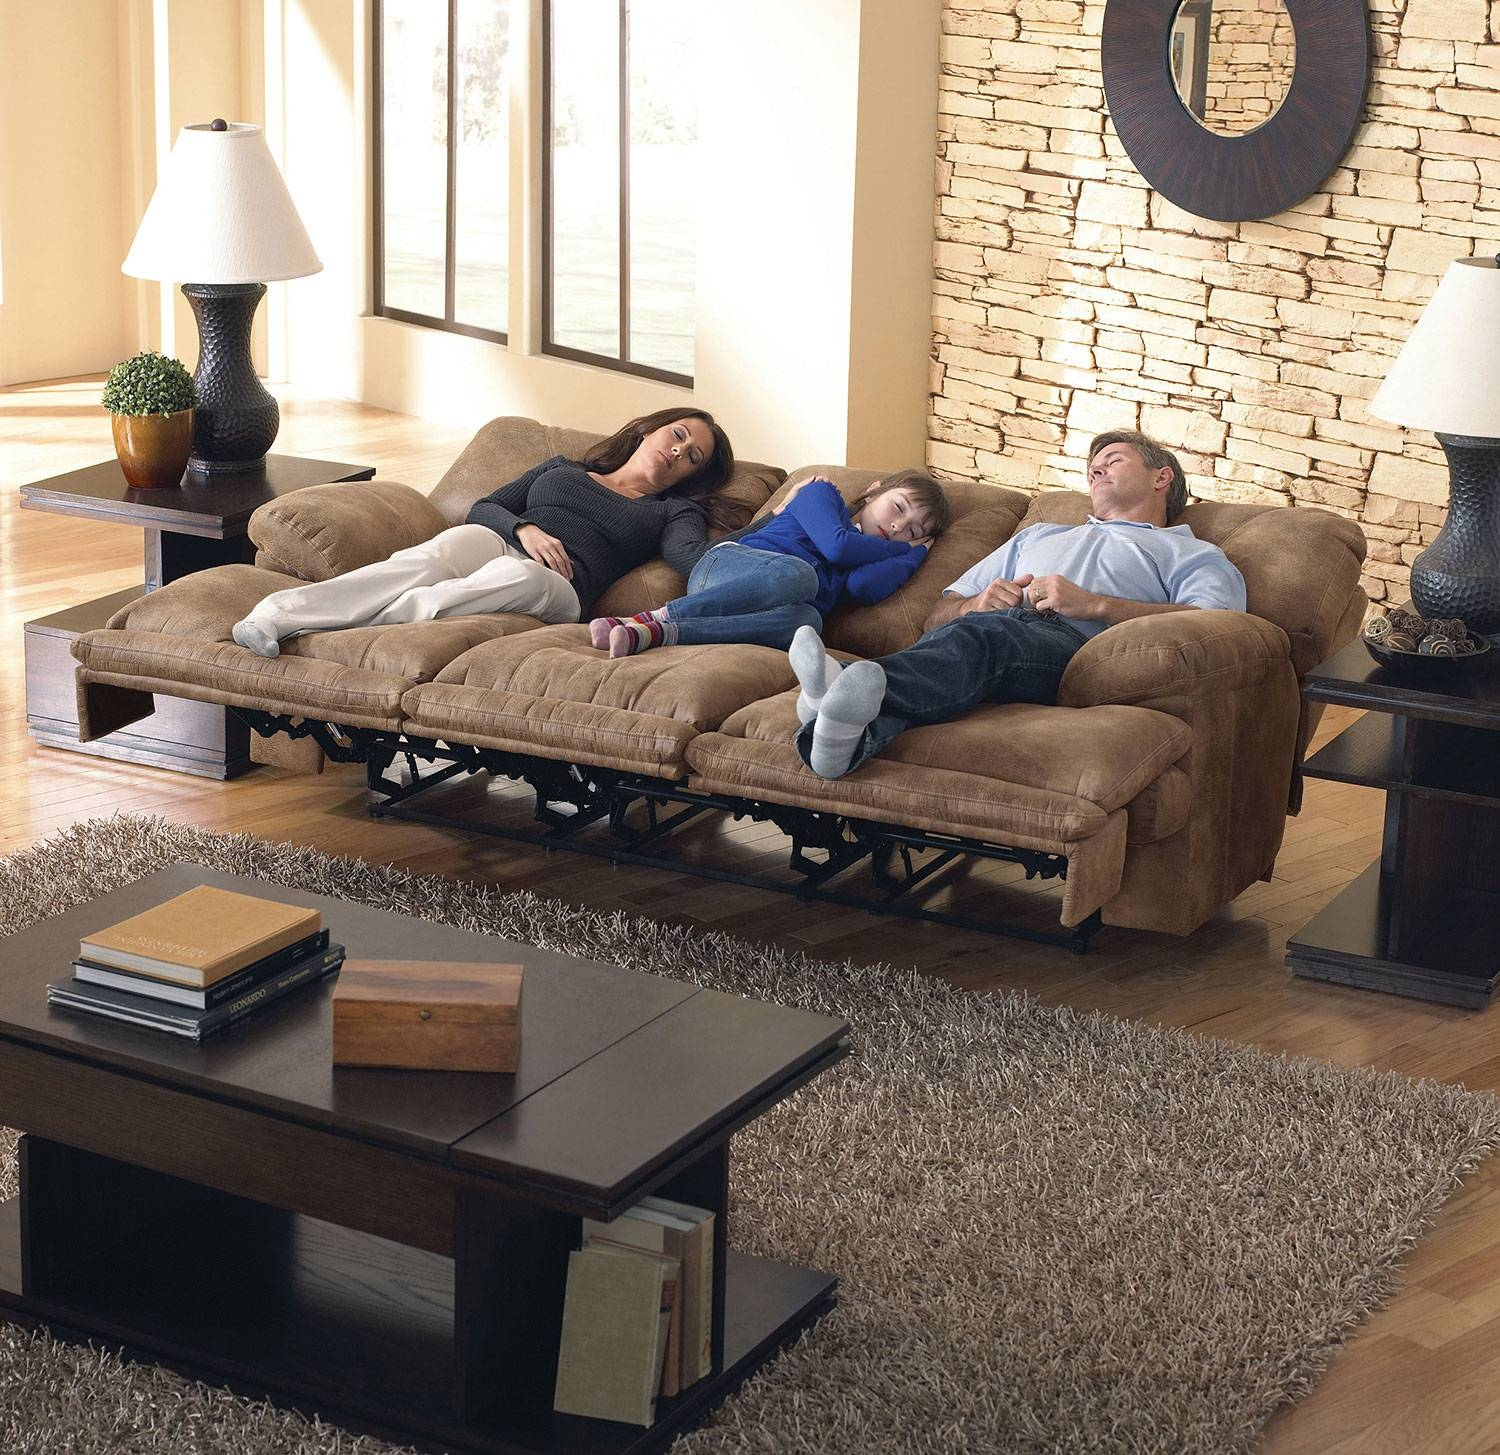 Elgin Reclining Sofa - Brandy | Levin Furniture within Catnapper Reclining Sofas (Image 10 of 15)